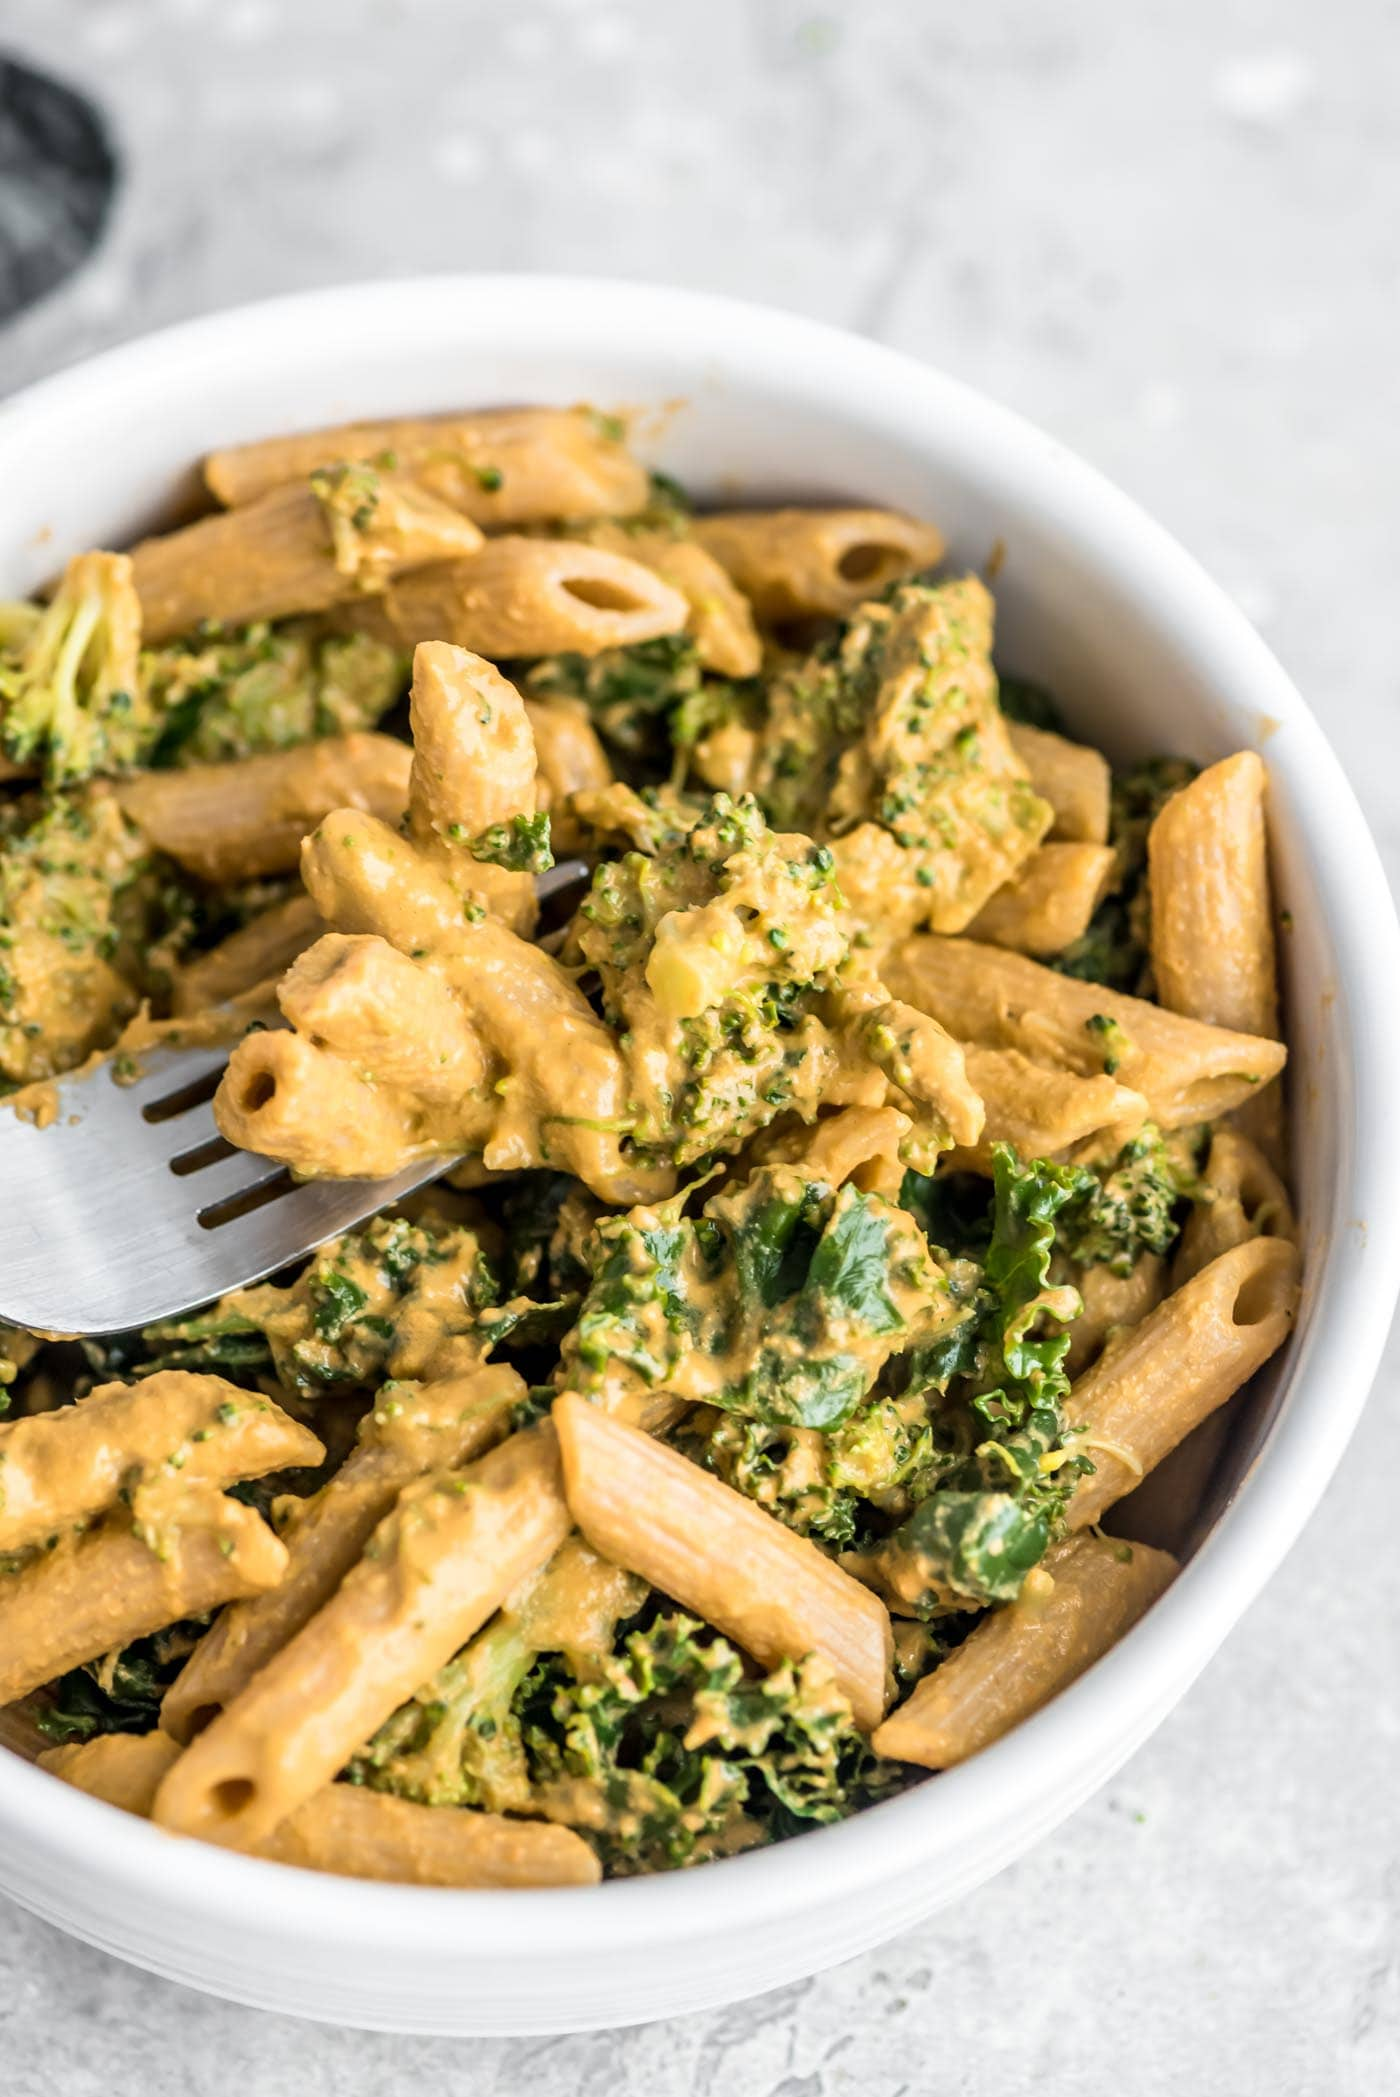 Easy Healthy Vegan Roasted Red Pepper Pesto with Kale and Broccoli Recipe